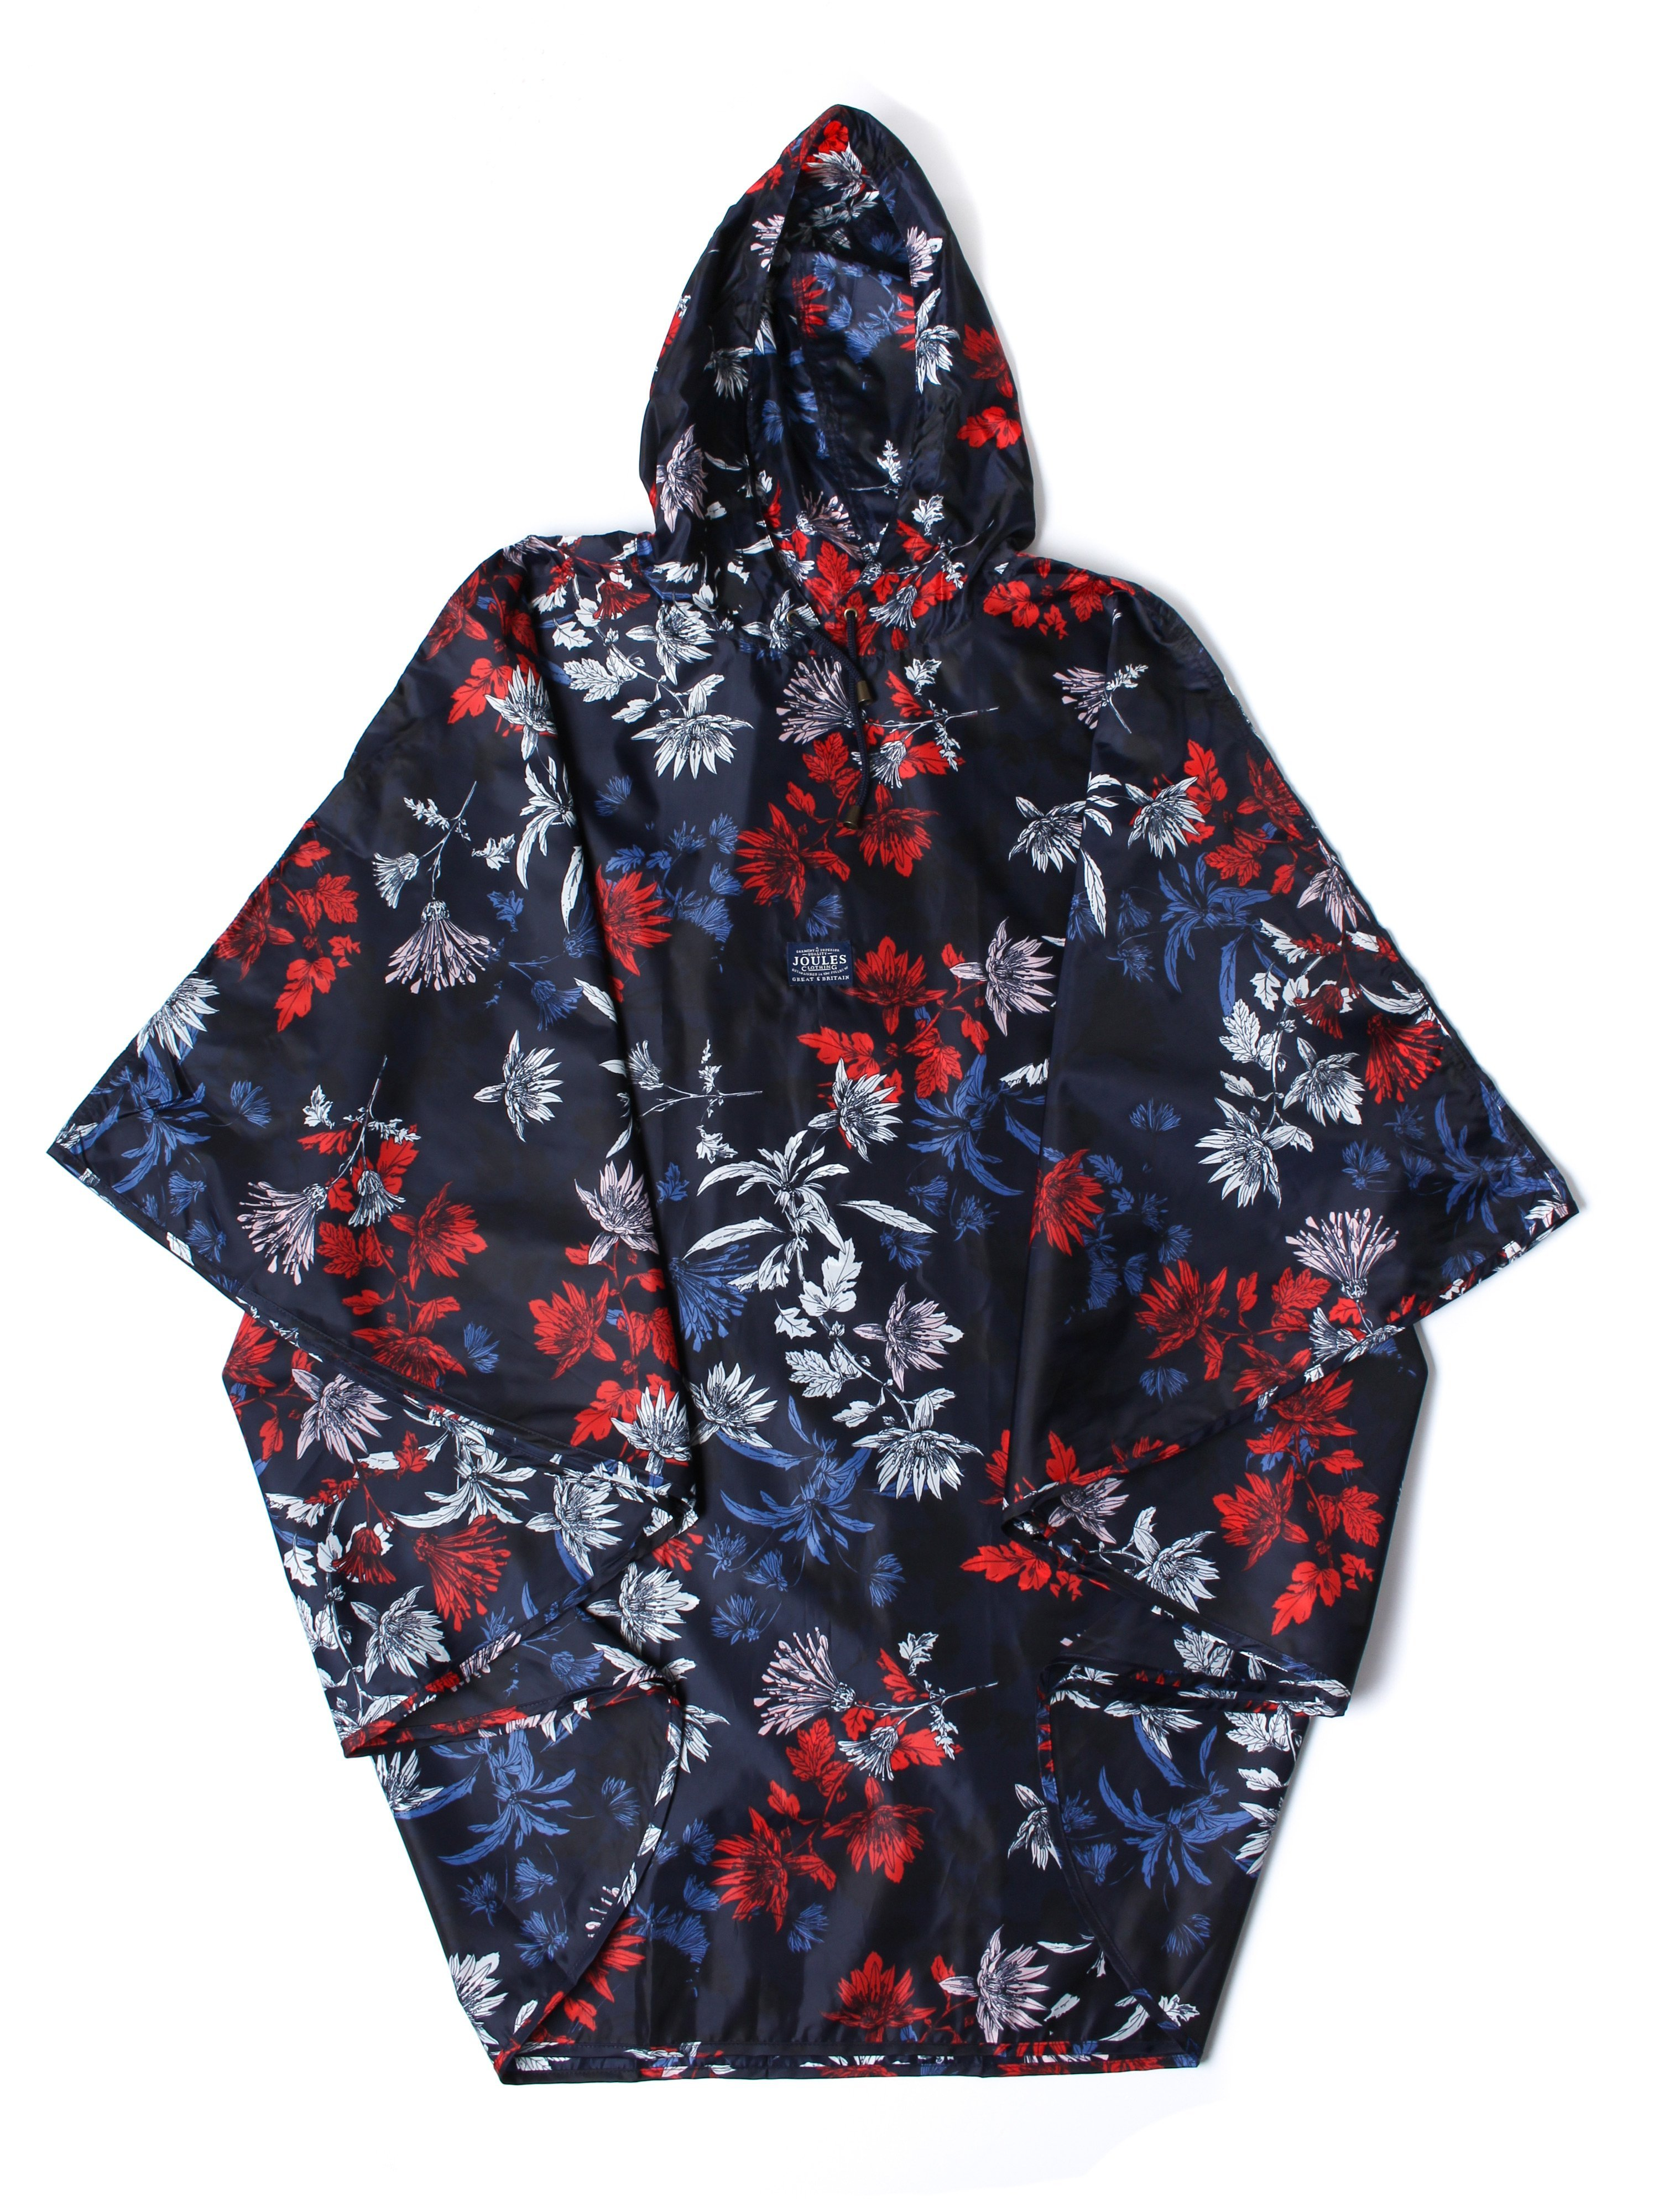 Joules Women's Rain Pack-Away Poncho - French Navy Floral